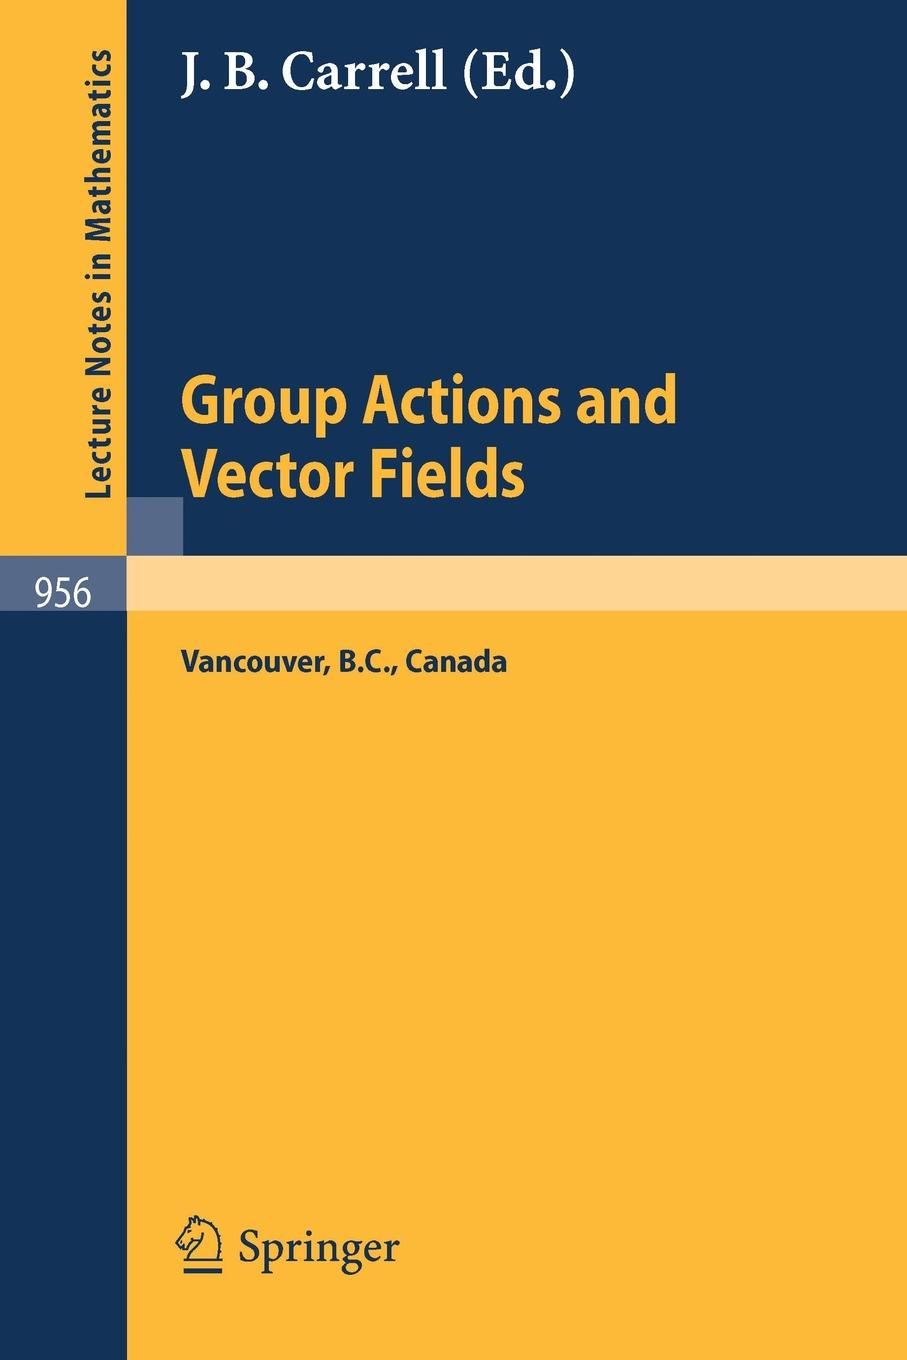 Group Actions and Vector Fields. Proceedings of a Polish-North American Seminar Held at the University British Columbia, January 15 - February 15,